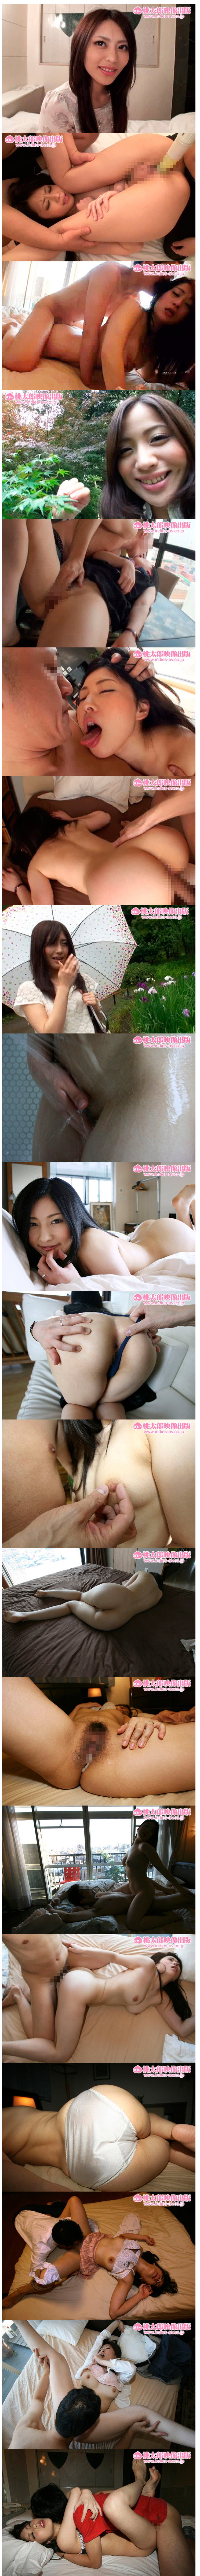 Asw-083 Porn japanese adult video dvd update on july 24, 2015